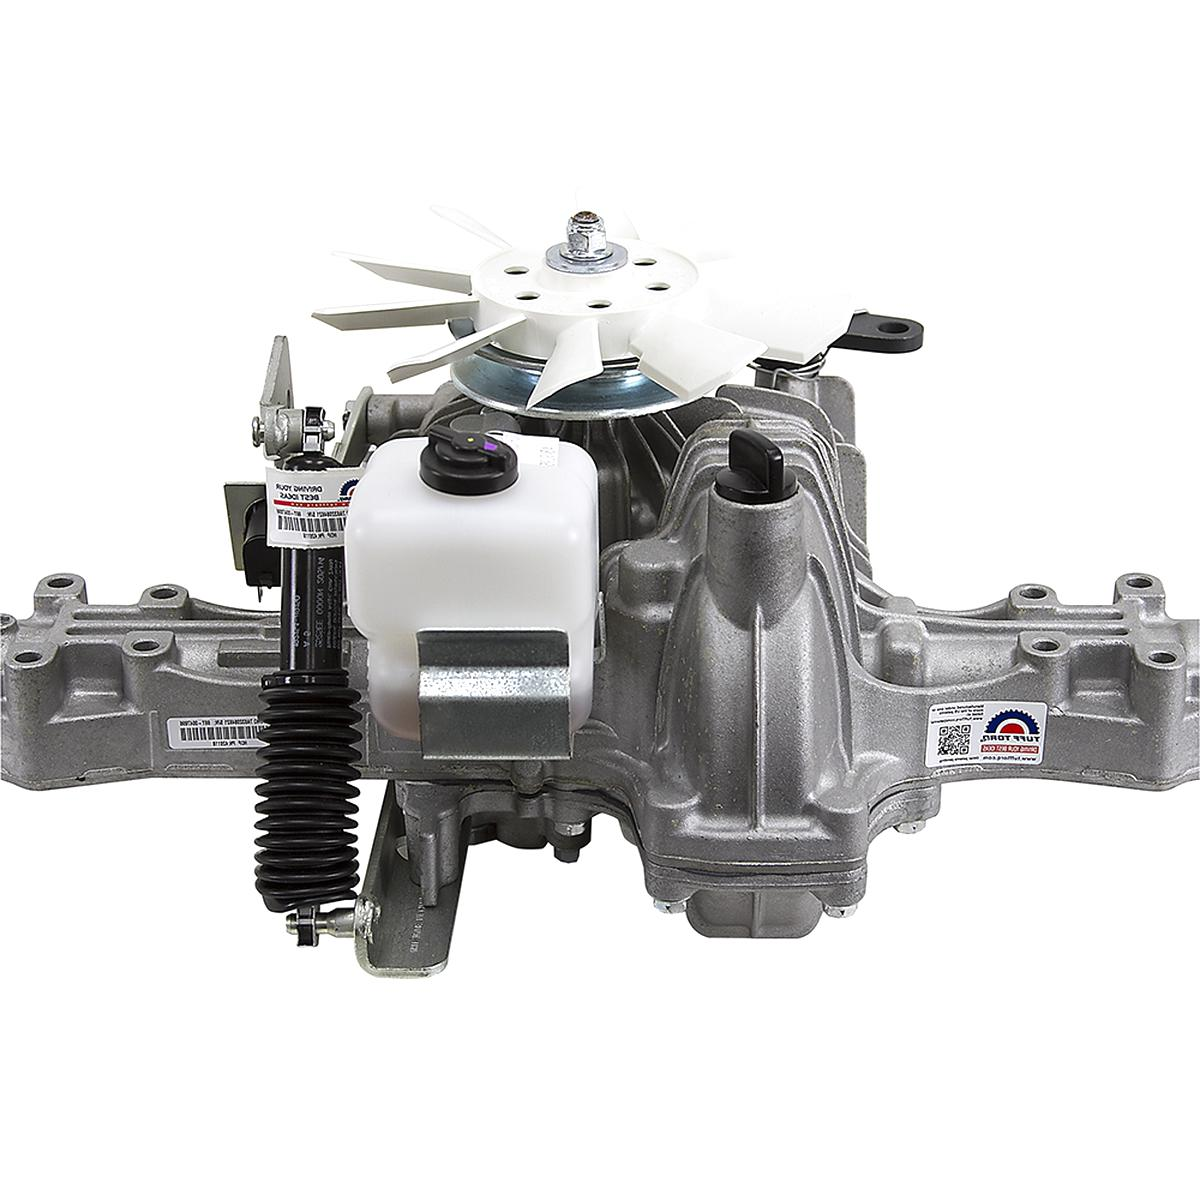 Tuff Torq Transmission for sale | Only 2 left at -65%